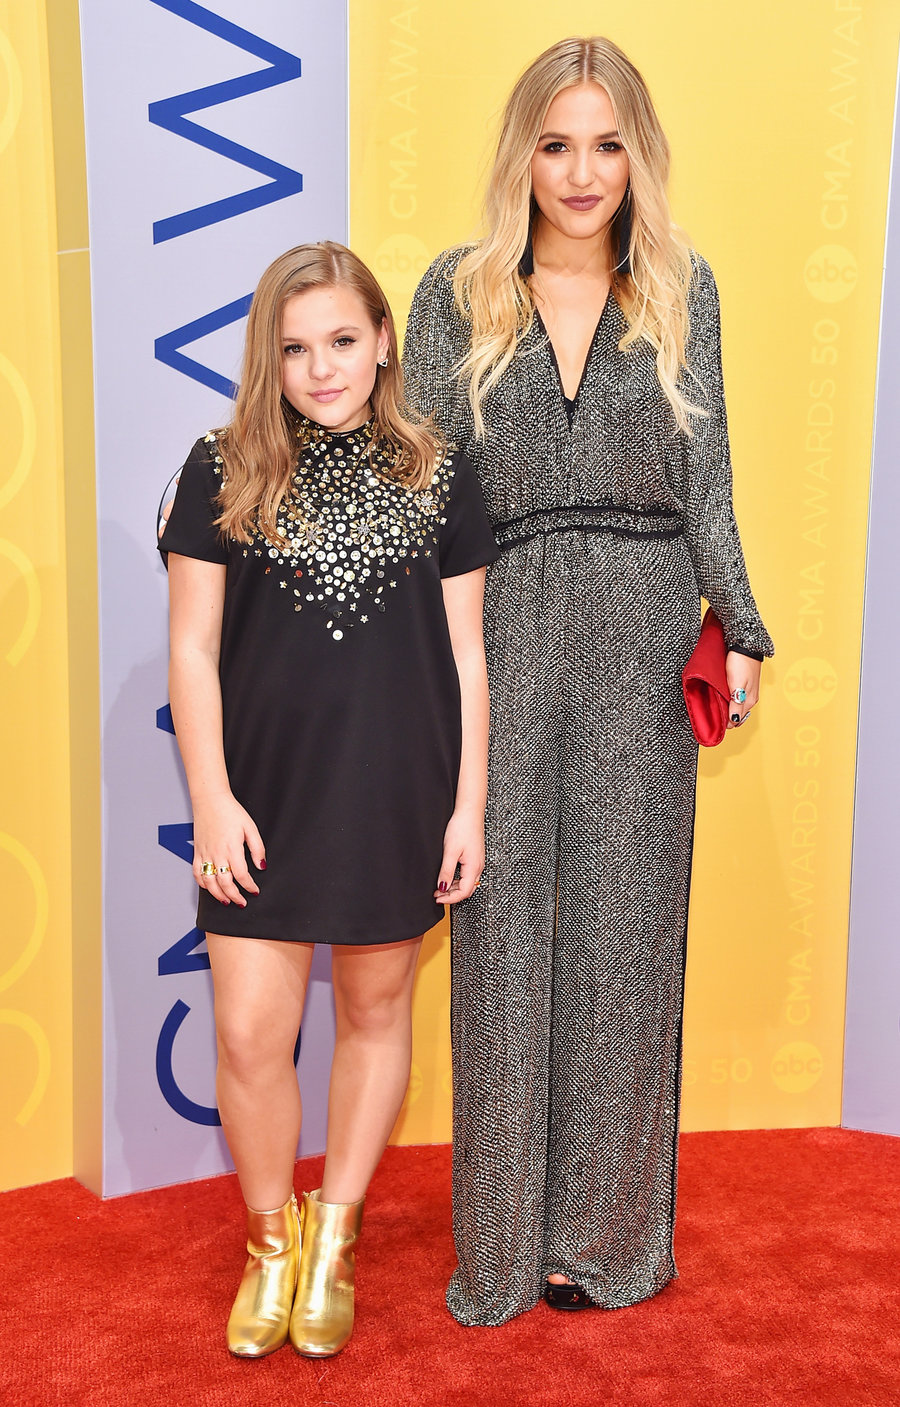 Maisy & Lennon Stella  CMA 2016  Glam on Maisy: Brittney Head  Glam on Lennon: Meg Boes  Style: Tiffany Gifford